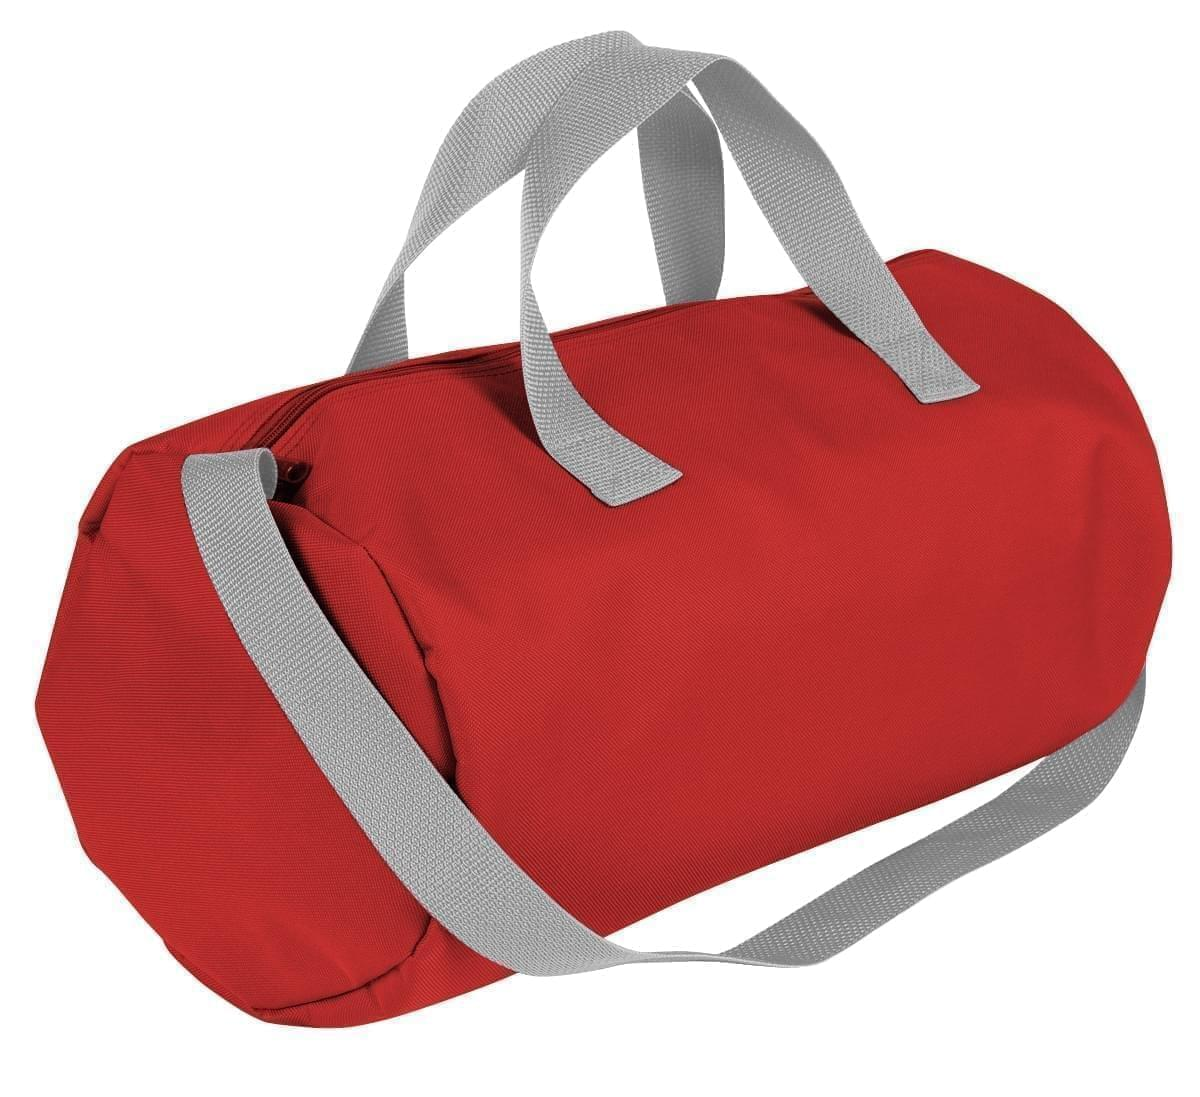 USA Made Nylon Poly Gym Roll Bags, Red-Grey, ROCX31AAZU